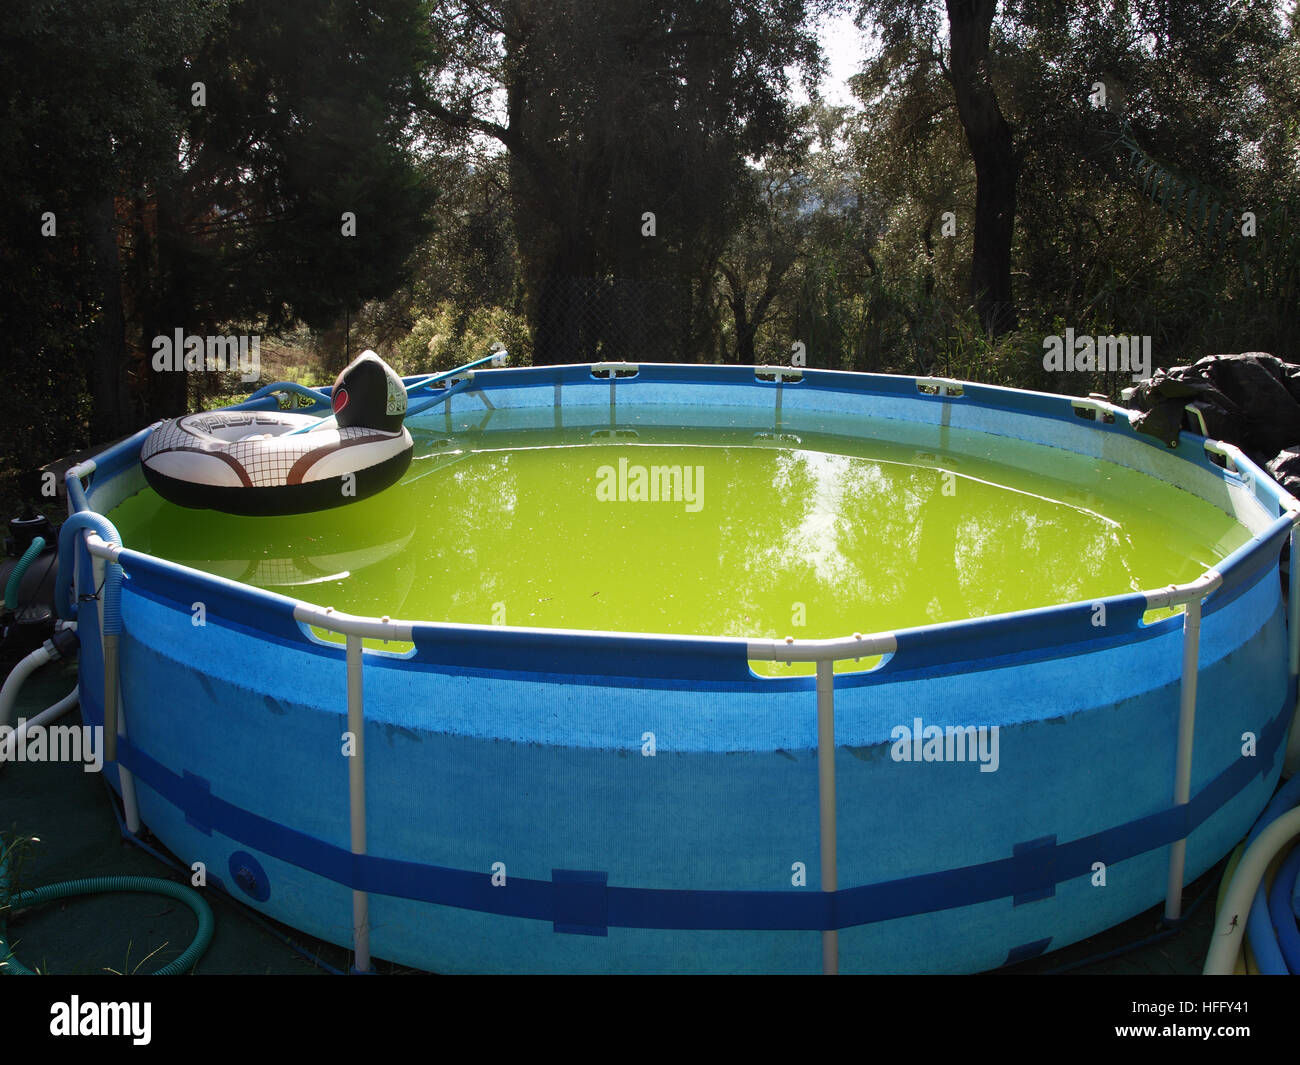 Stagnant Swimming Pool Stock Photos Stagnant Swimming Pool Stock Images Alamy